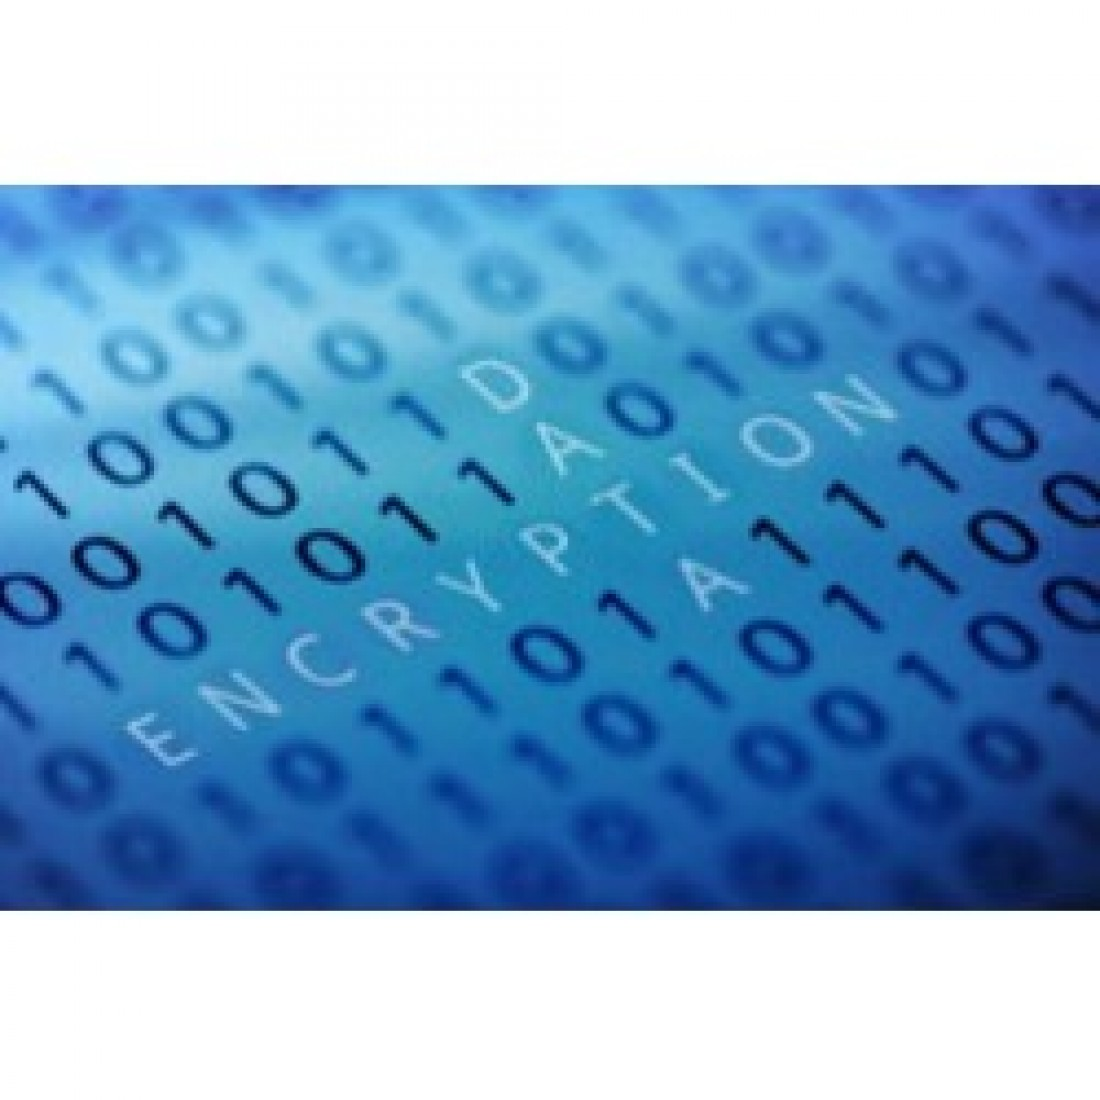 iSeries AS400 Encryption for IBM DB2 database field column row